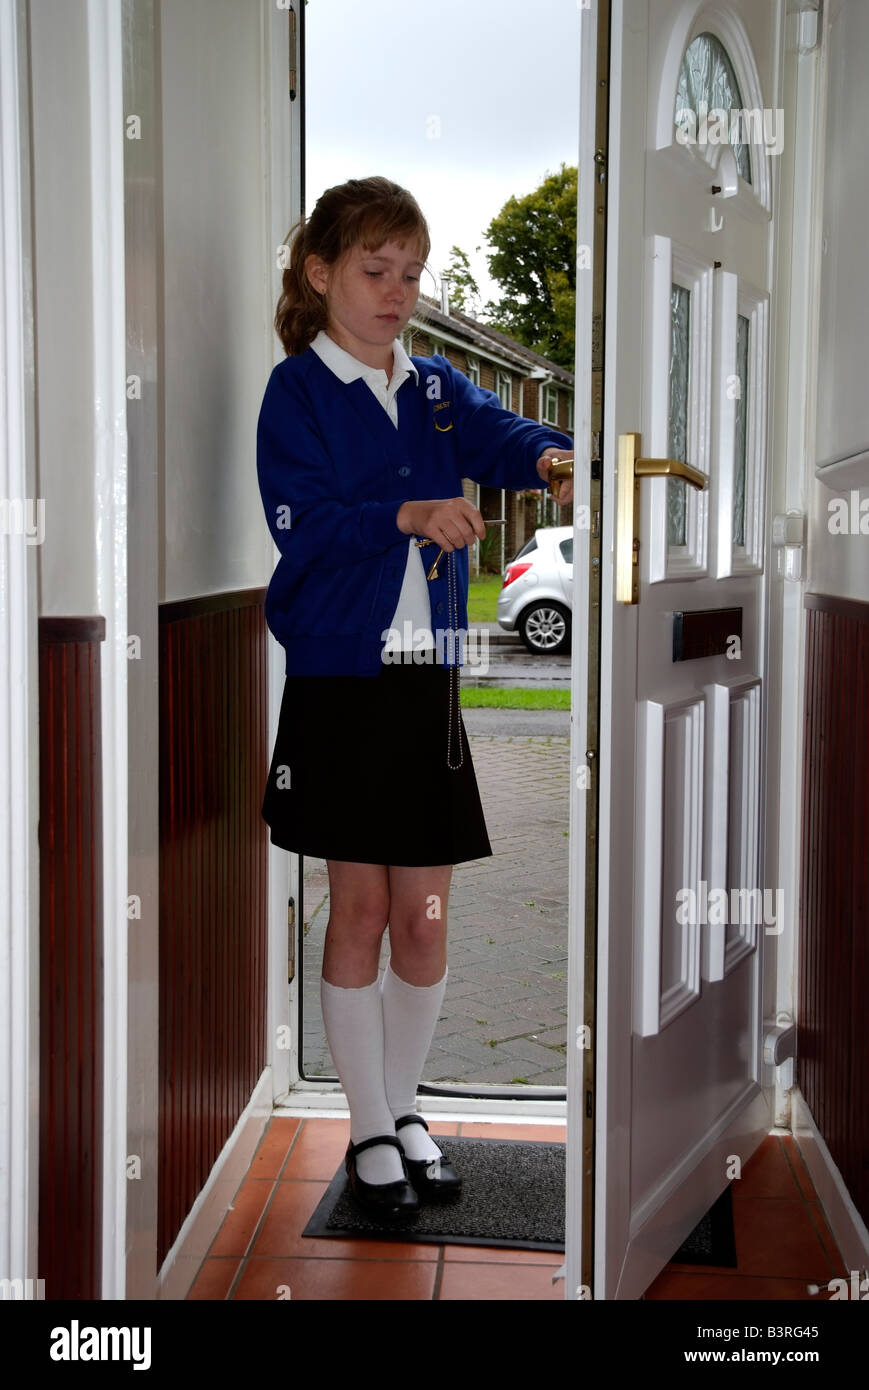 Latchkey Child A Young Schoolgirl Holding A Front Door Key